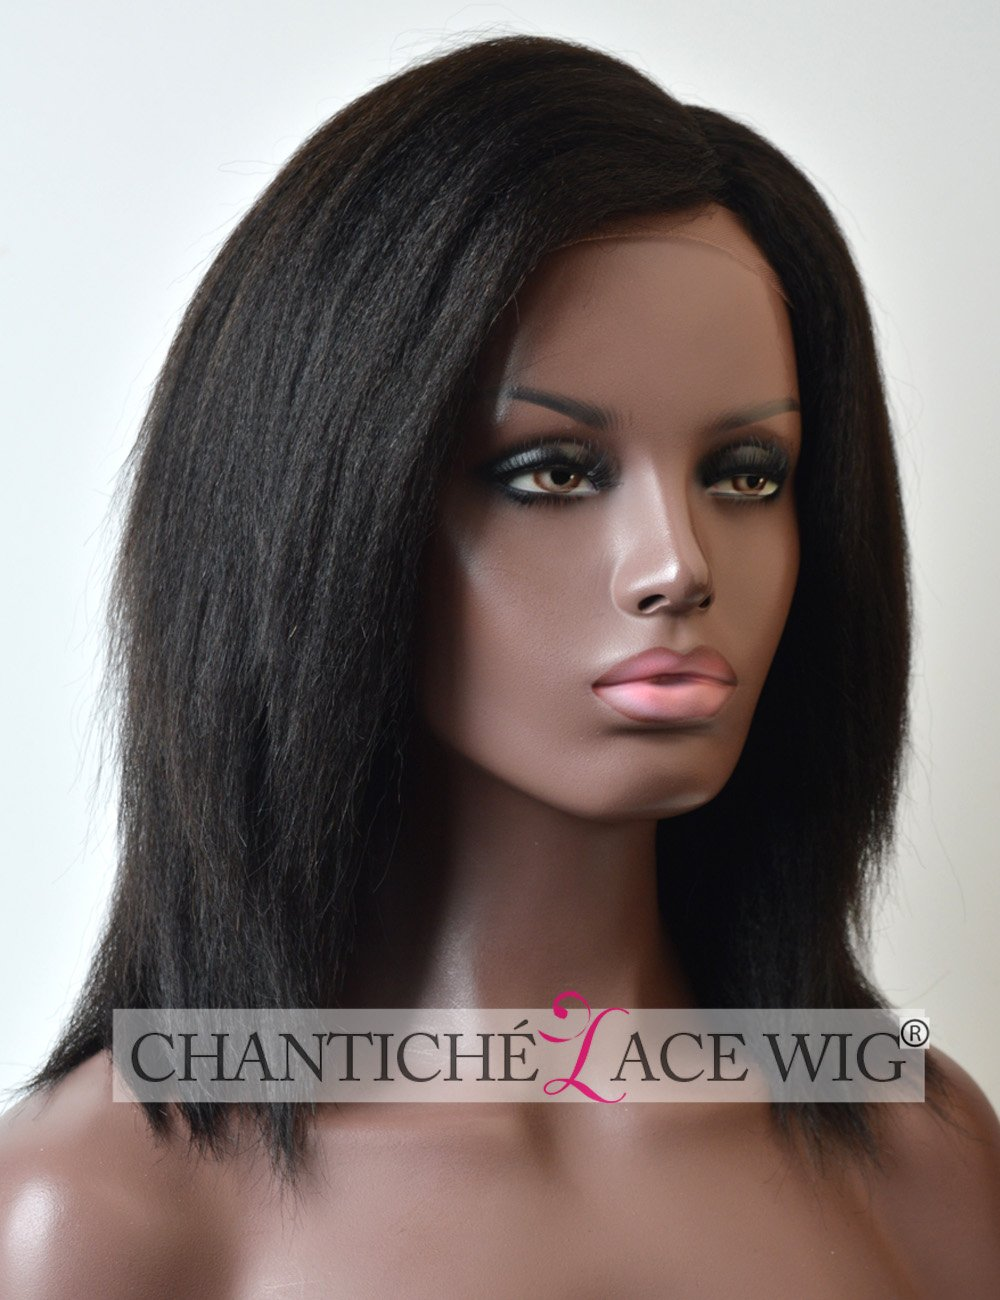 "Chantiche Italian Yaki Short Bob Wigs Human Hair 3.5"" Natural looking Invisible Left Side Deep Parting Glueless Brazilian Remy Hair Lace Front Wig for African American Women 10 Inch #1B off Black supplier"